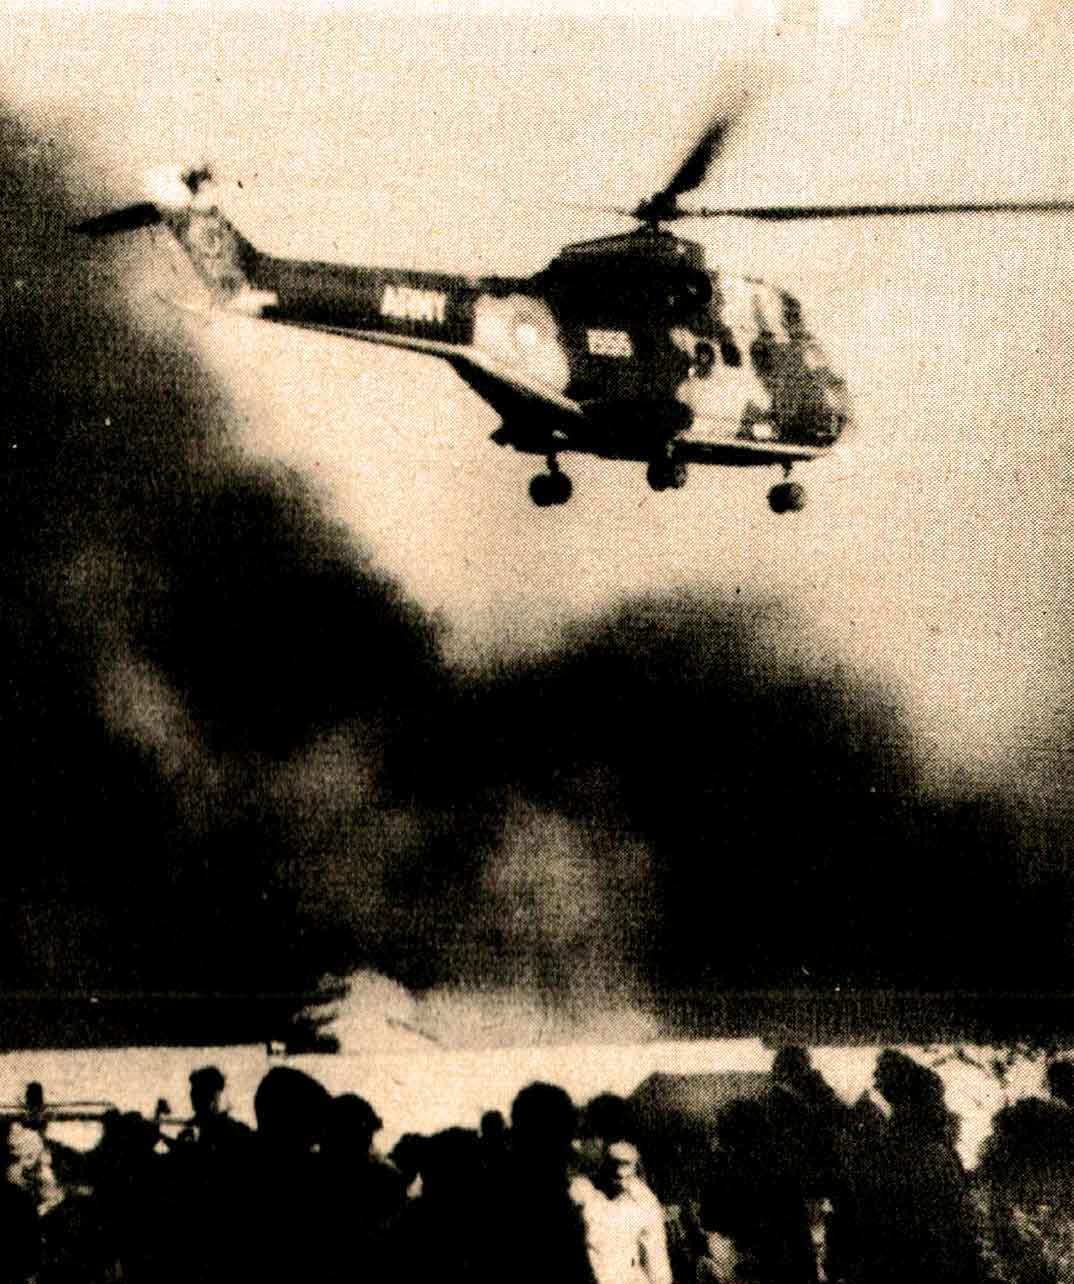 Hostage Drama: Day 18 – Another Day, Another Burning Effigy  – November 21, 1979